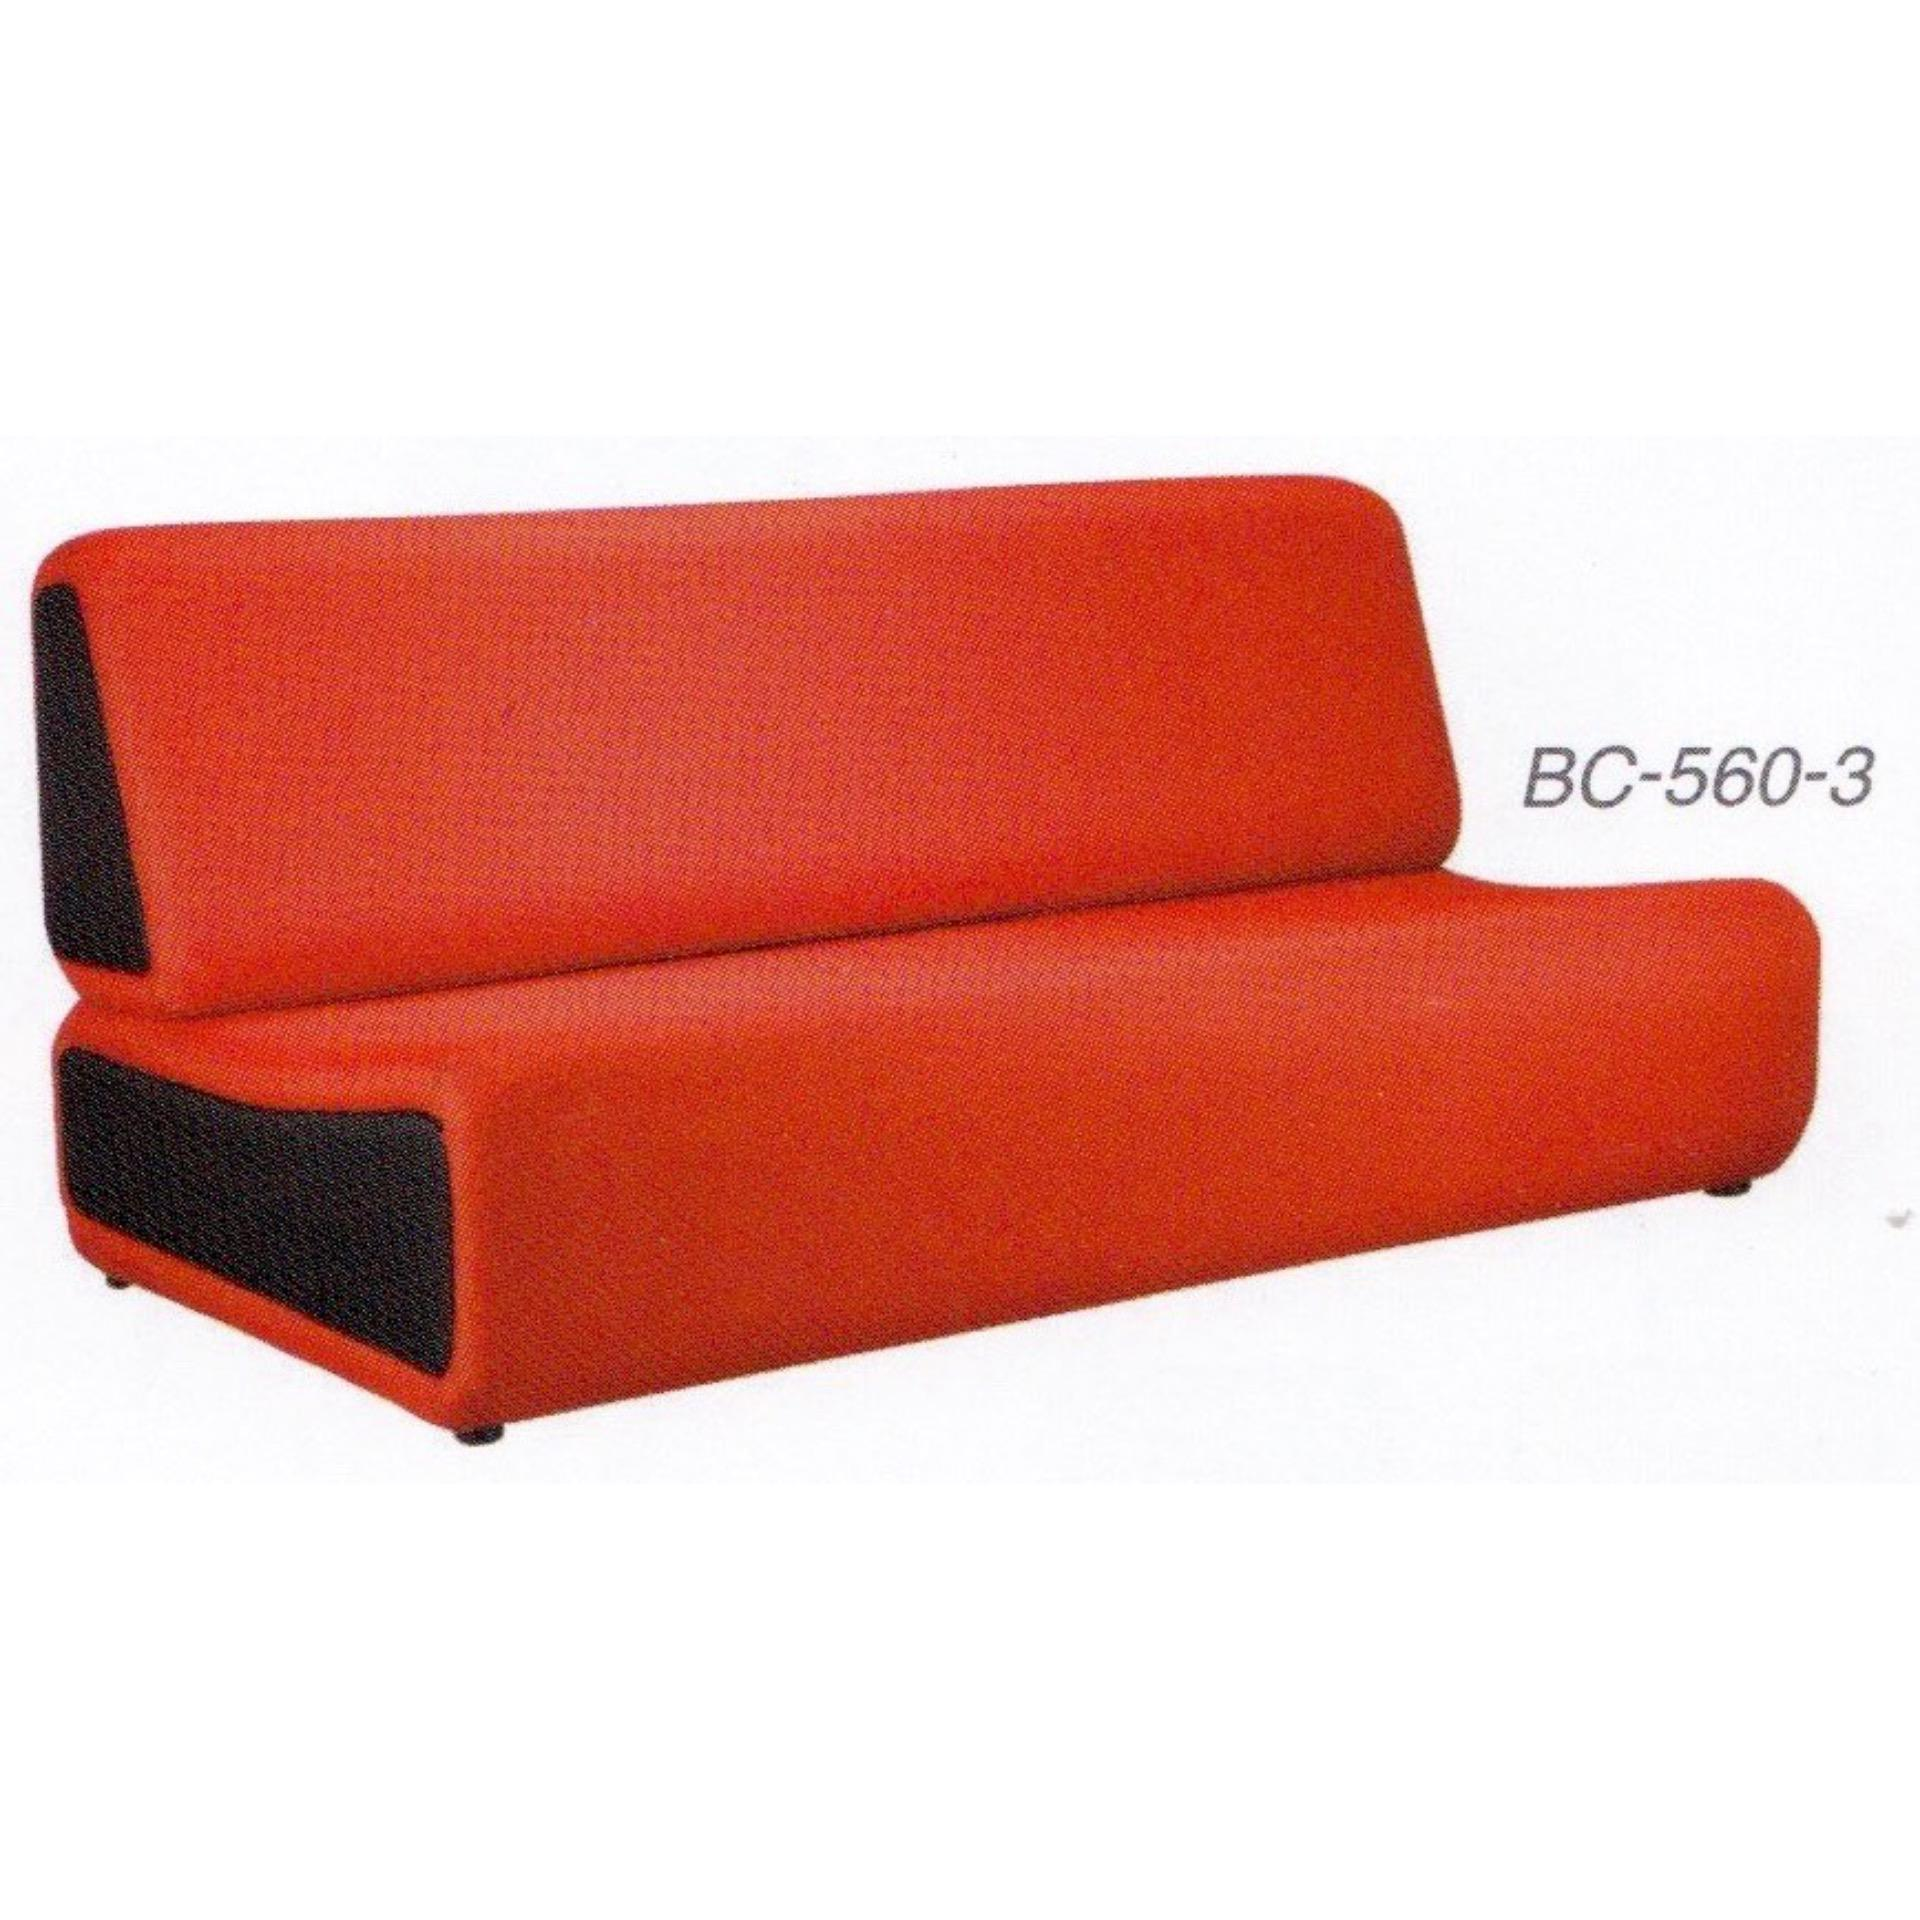 Terrific Deco Waiting Area 3 Seater Cushion Link Chair Hall Clinics Office Red Pabps2019 Chair Design Images Pabps2019Com